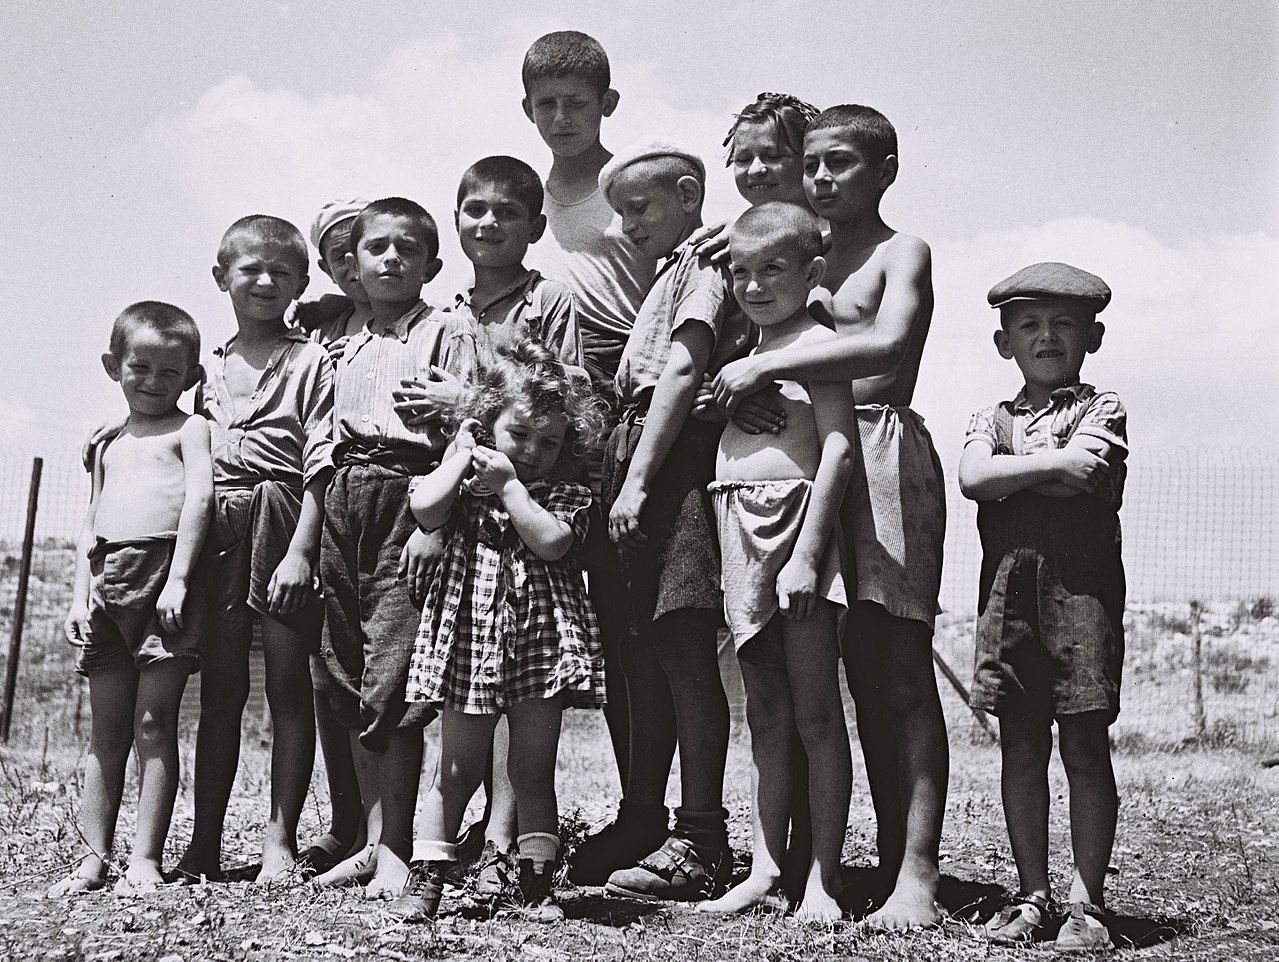 undisclosed victims of the holocaust Remembering the roma victims of the holocaust the holocaust narrative focusing on the exclusivity of the jewish experience is wrong - and must change by gina benevento 02 aug 2017 07:51 gmt.